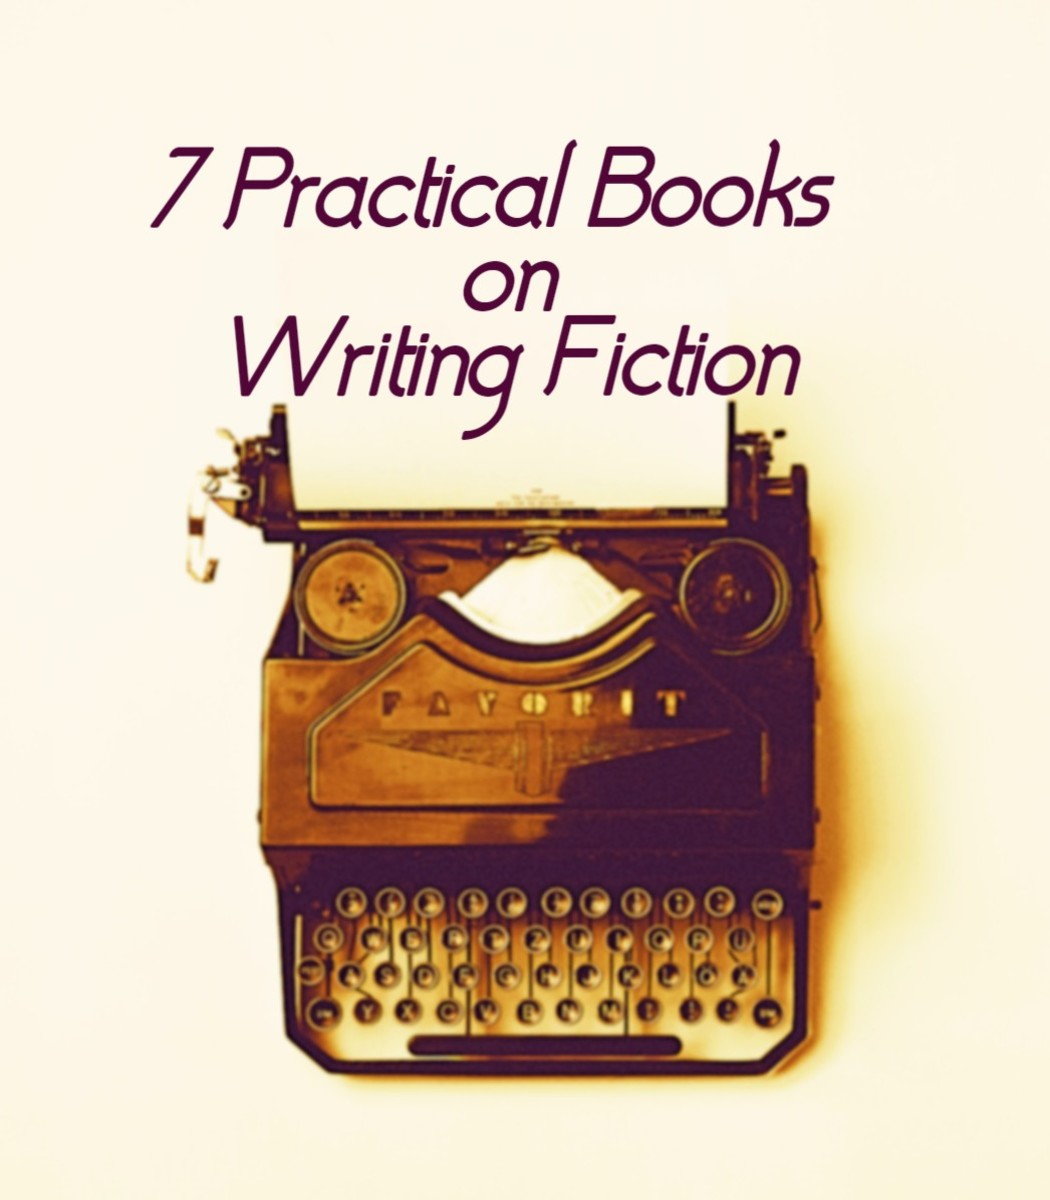 7 Practical Books on Writing Fiction